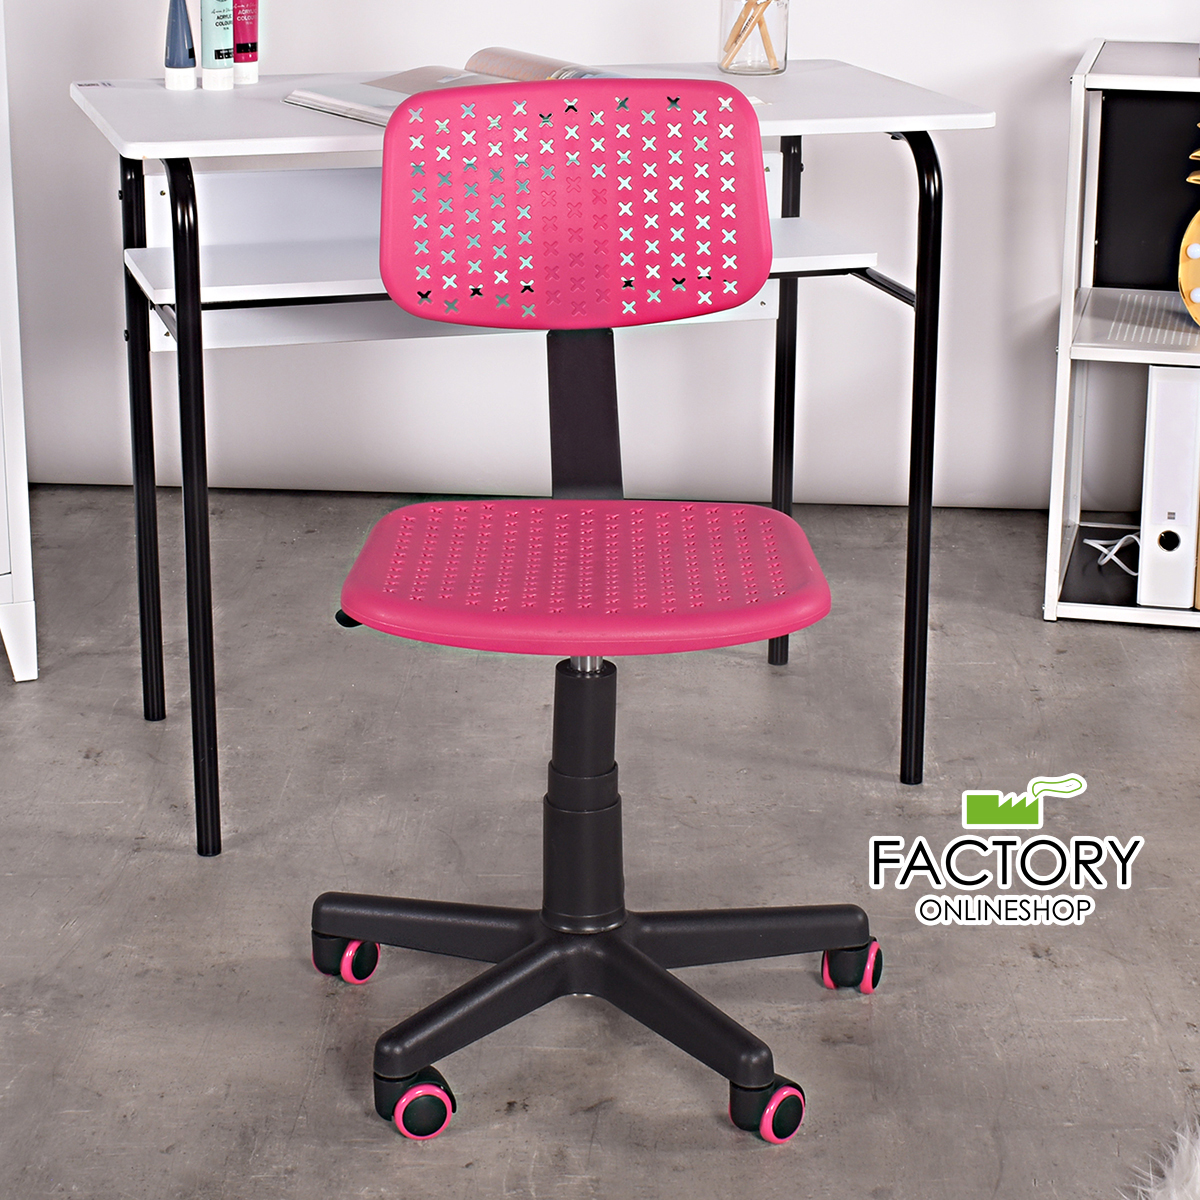 Marvelous Details About Office Chair Pink Swivel Kids Room Computer Student Desk Task Adjustable Rolling Machost Co Dining Chair Design Ideas Machostcouk